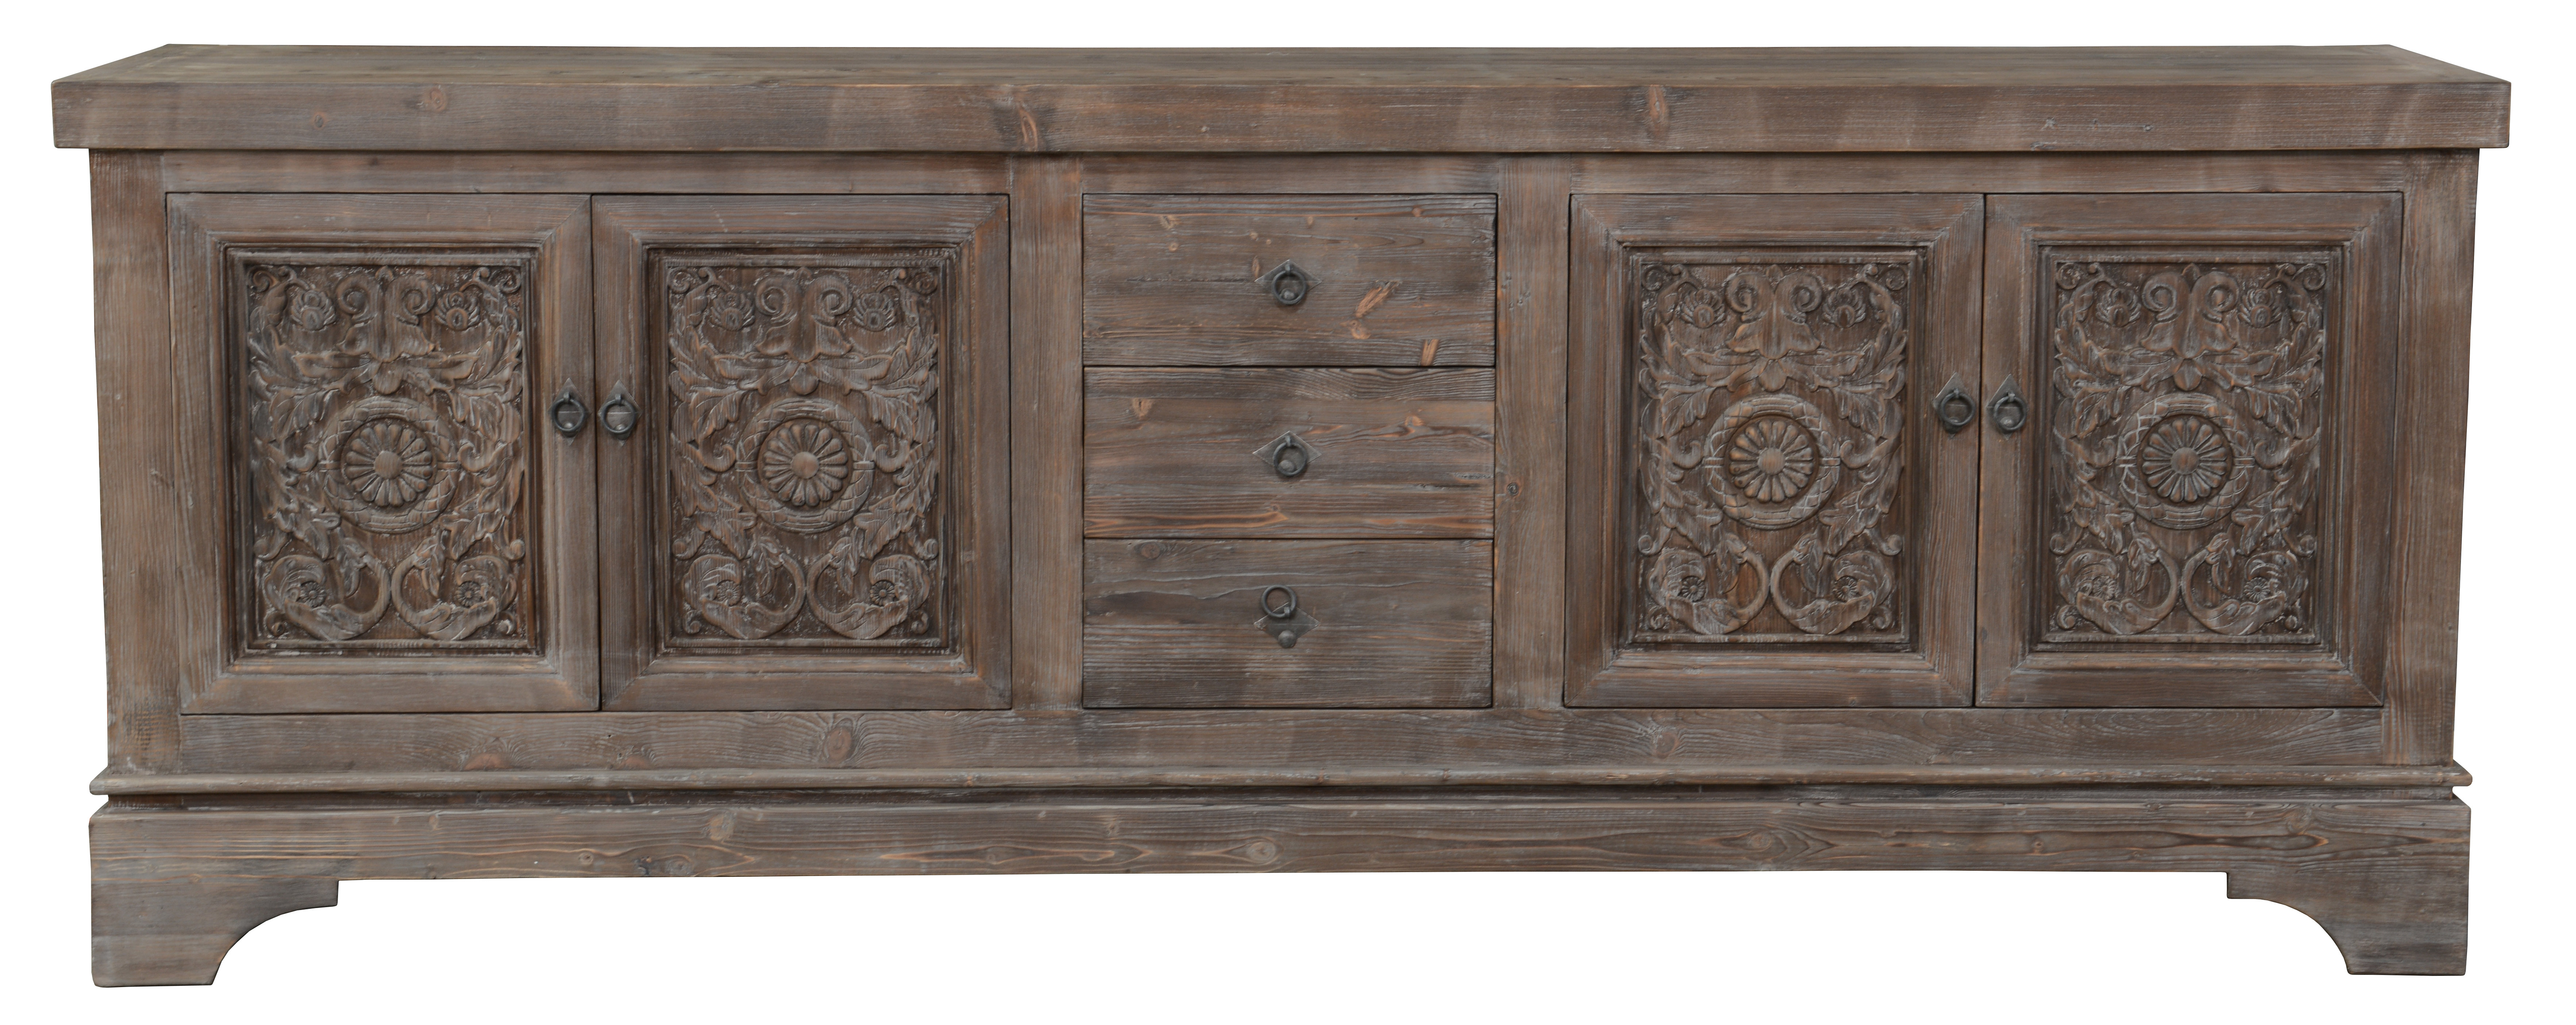 Farmhouse & Rustic Sideboards & Buffets   Birch Lane Pertaining To Most Current Ilyan Traditional Wood Sideboards (View 14 of 20)